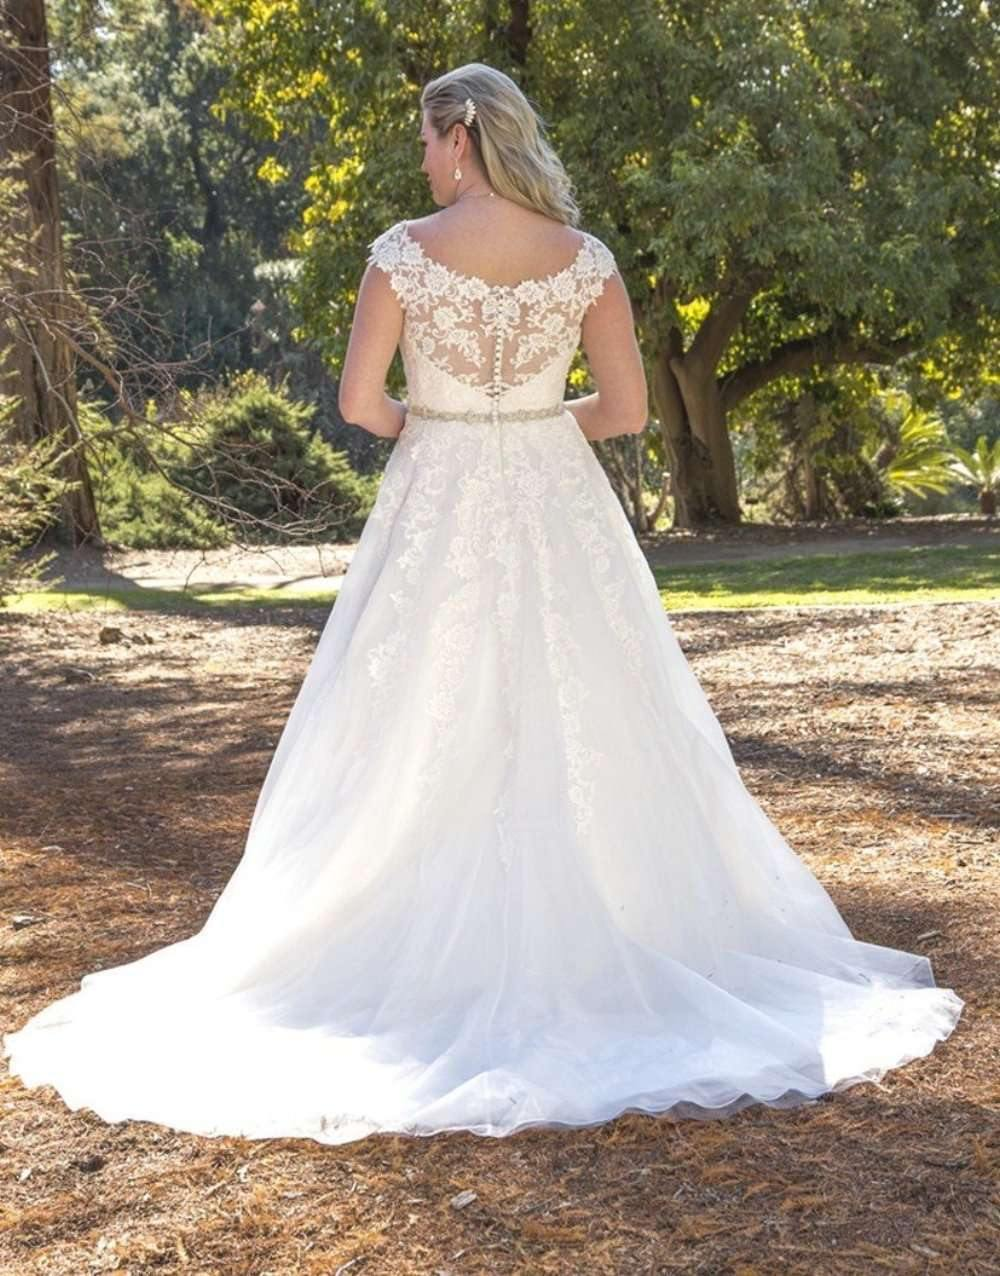 UK24 - VENUS - SANDRA - SALE - Adore Bridal and Occasion Wear